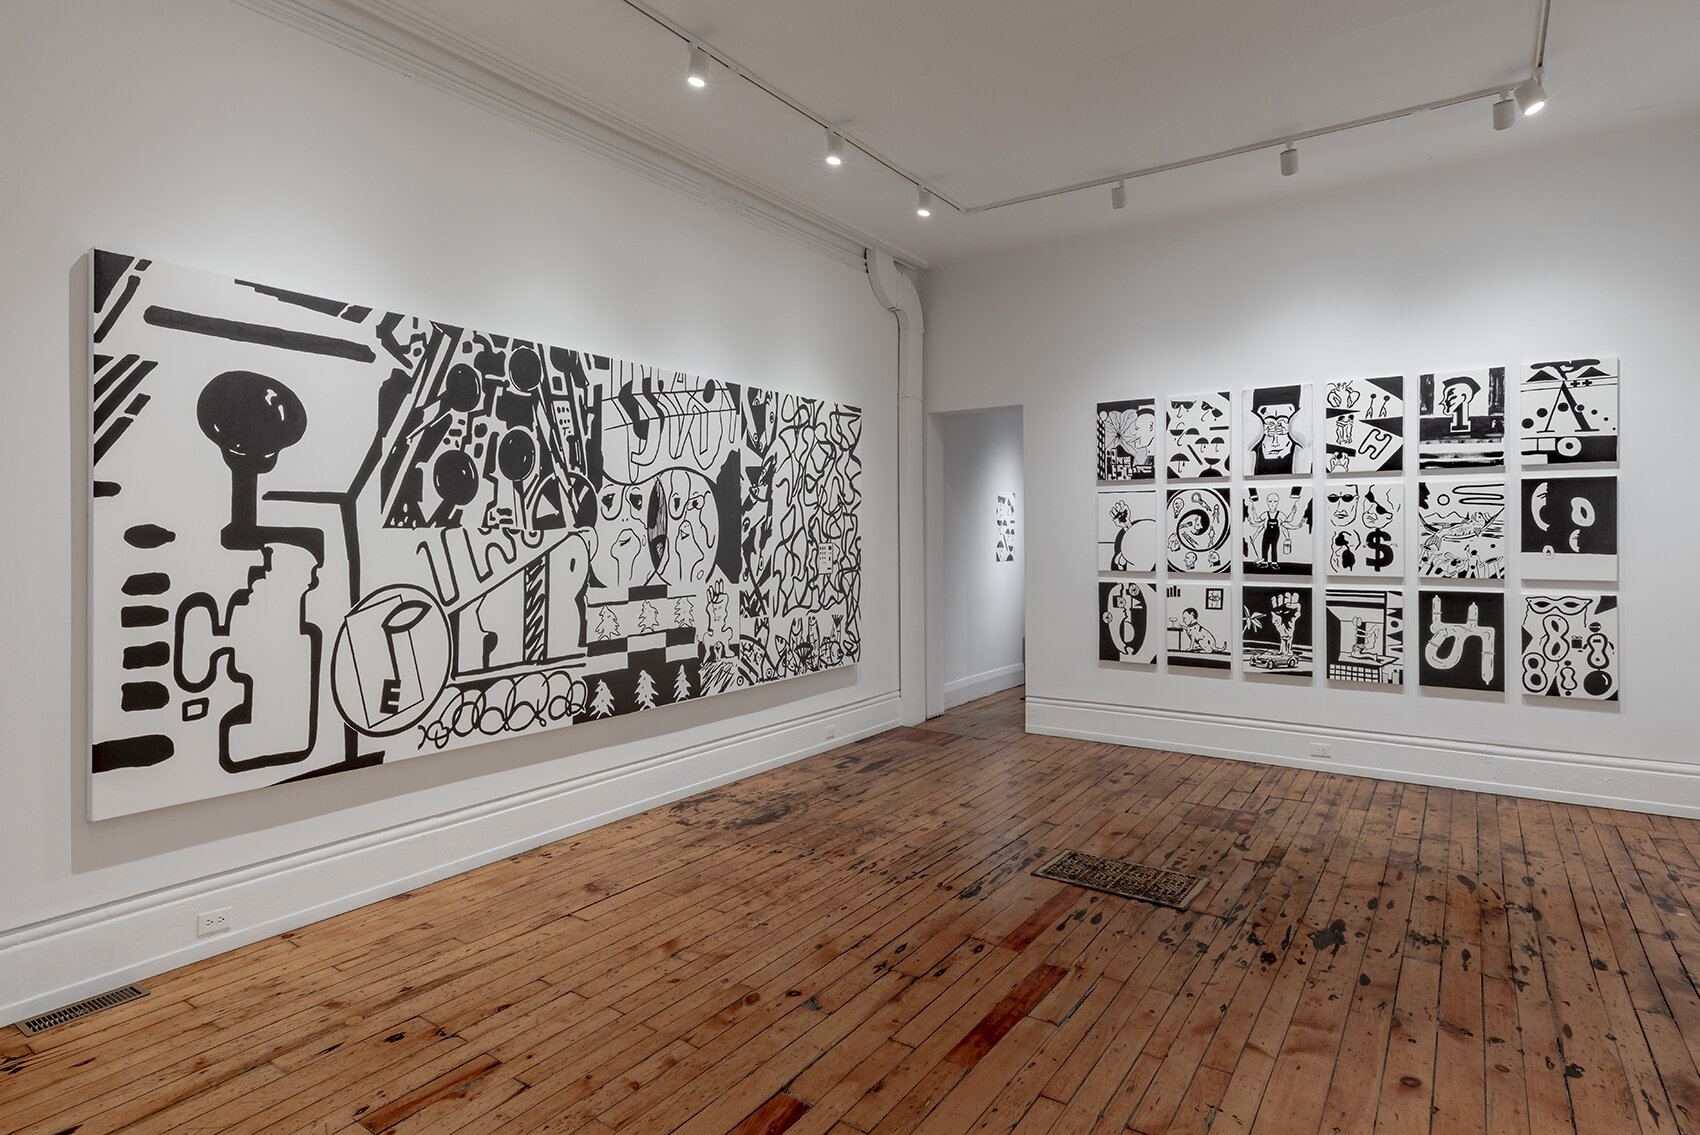 Isaac Midnight Repairs 2019 installation view 2  Low Res.jpg